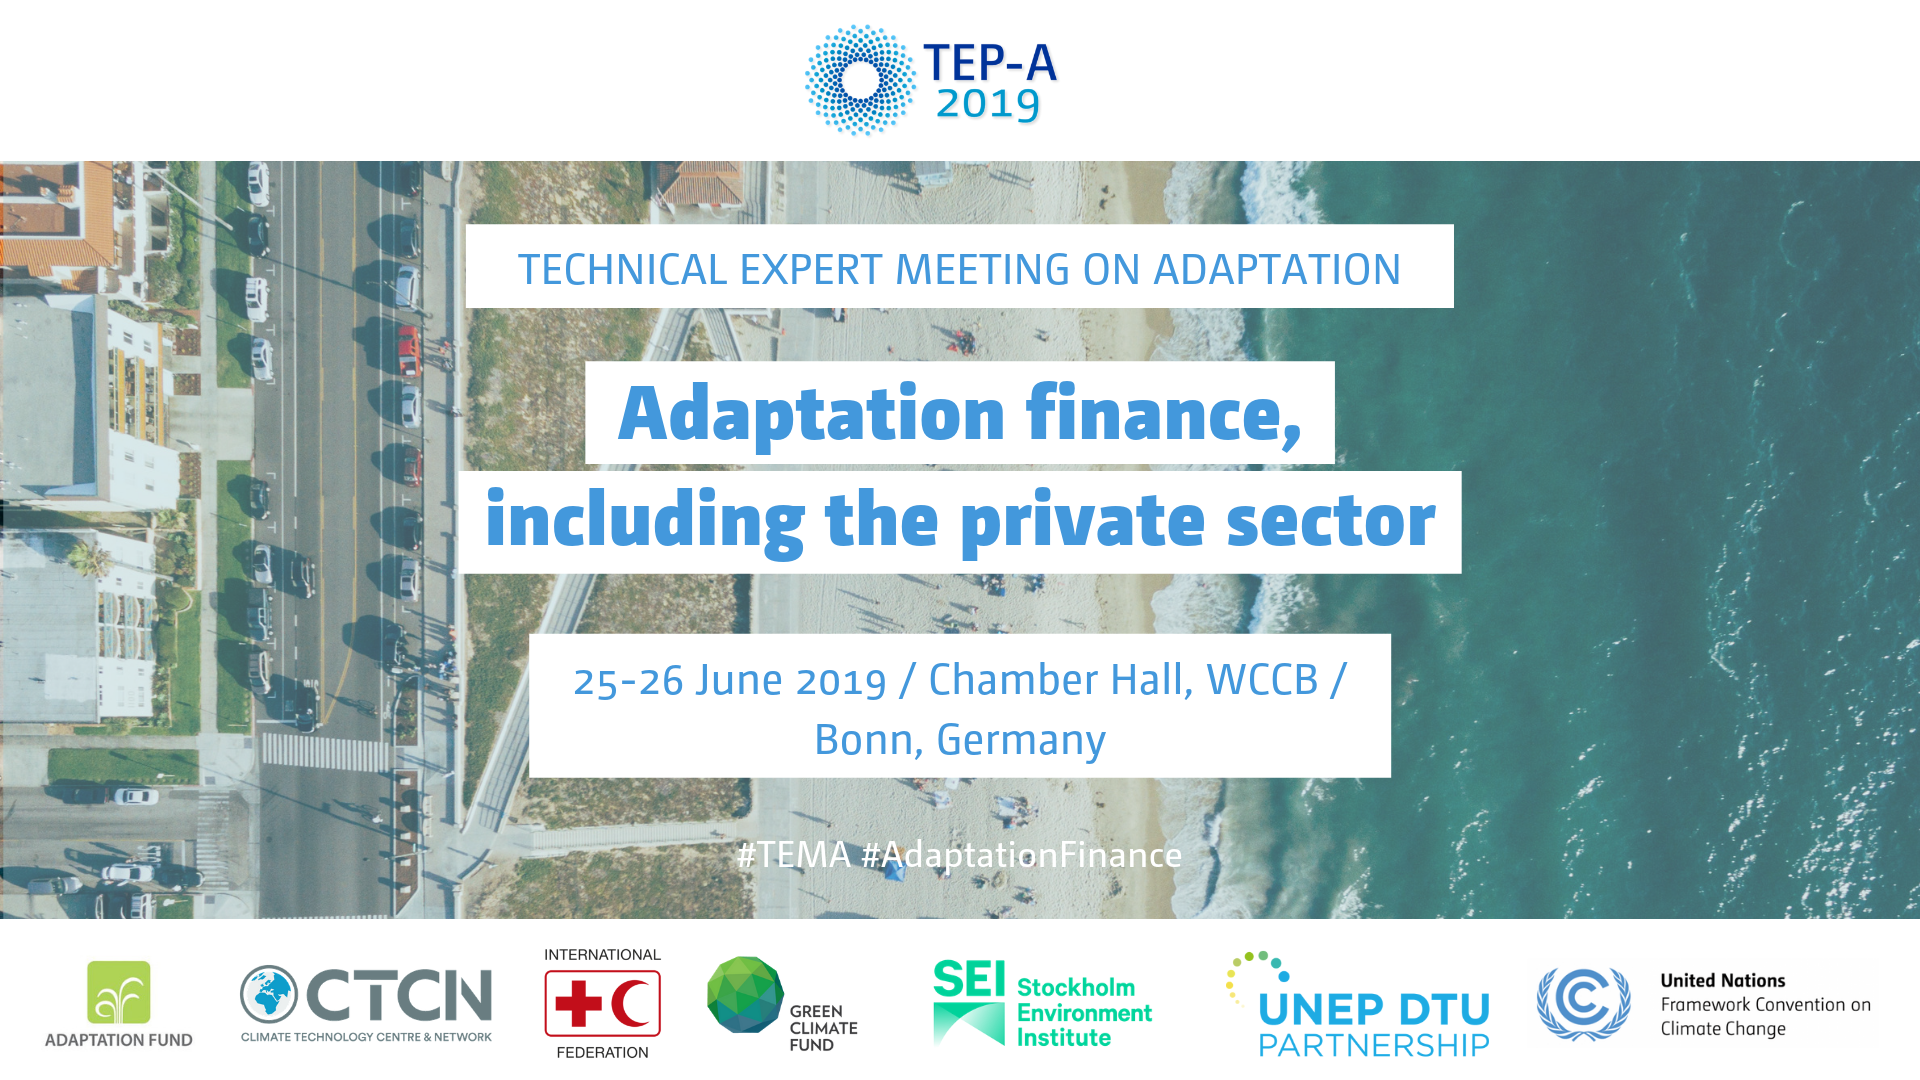 2019 Technical Expert Meeting on Adaptation Overview slide